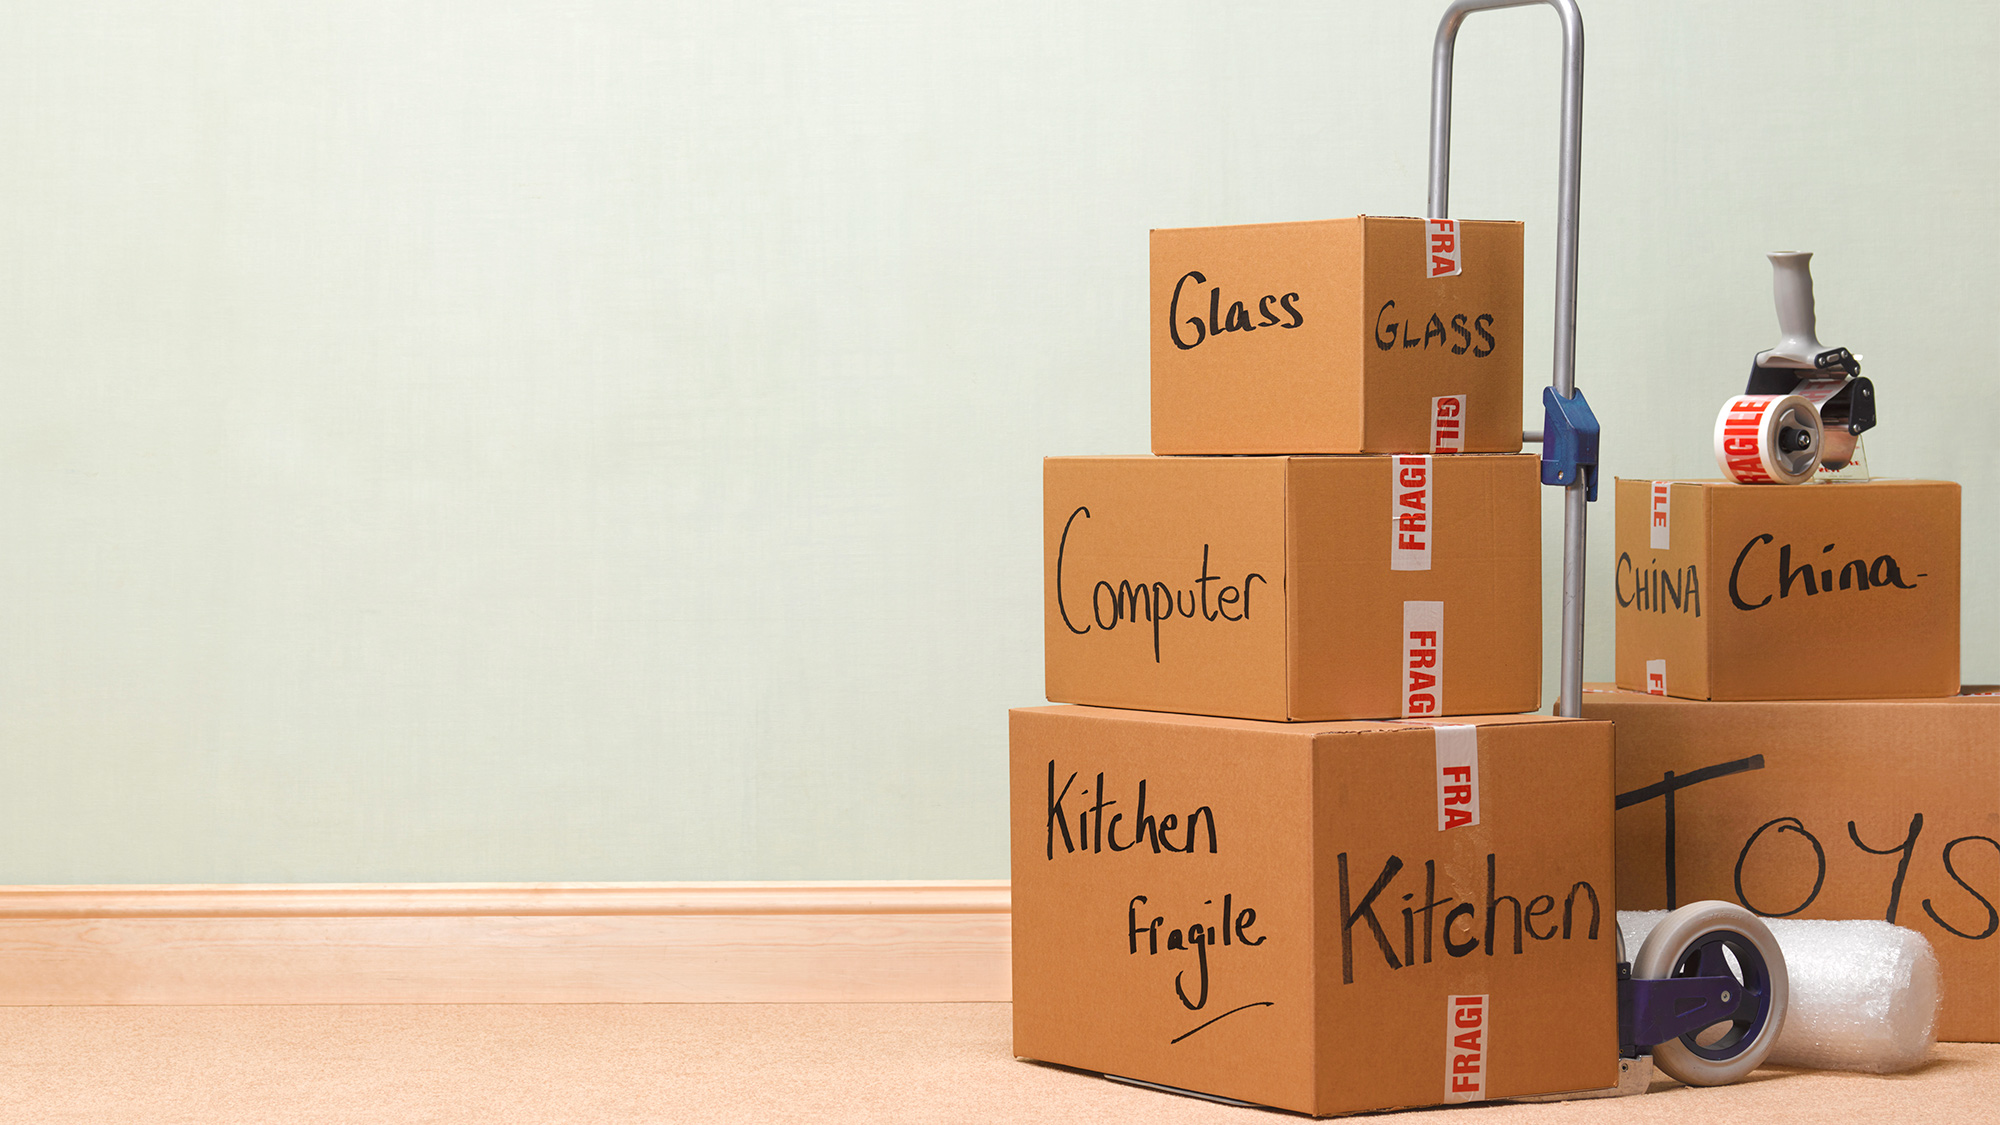 express delivery northwest wardrobe wine box tamworth home boxes book removals moving and